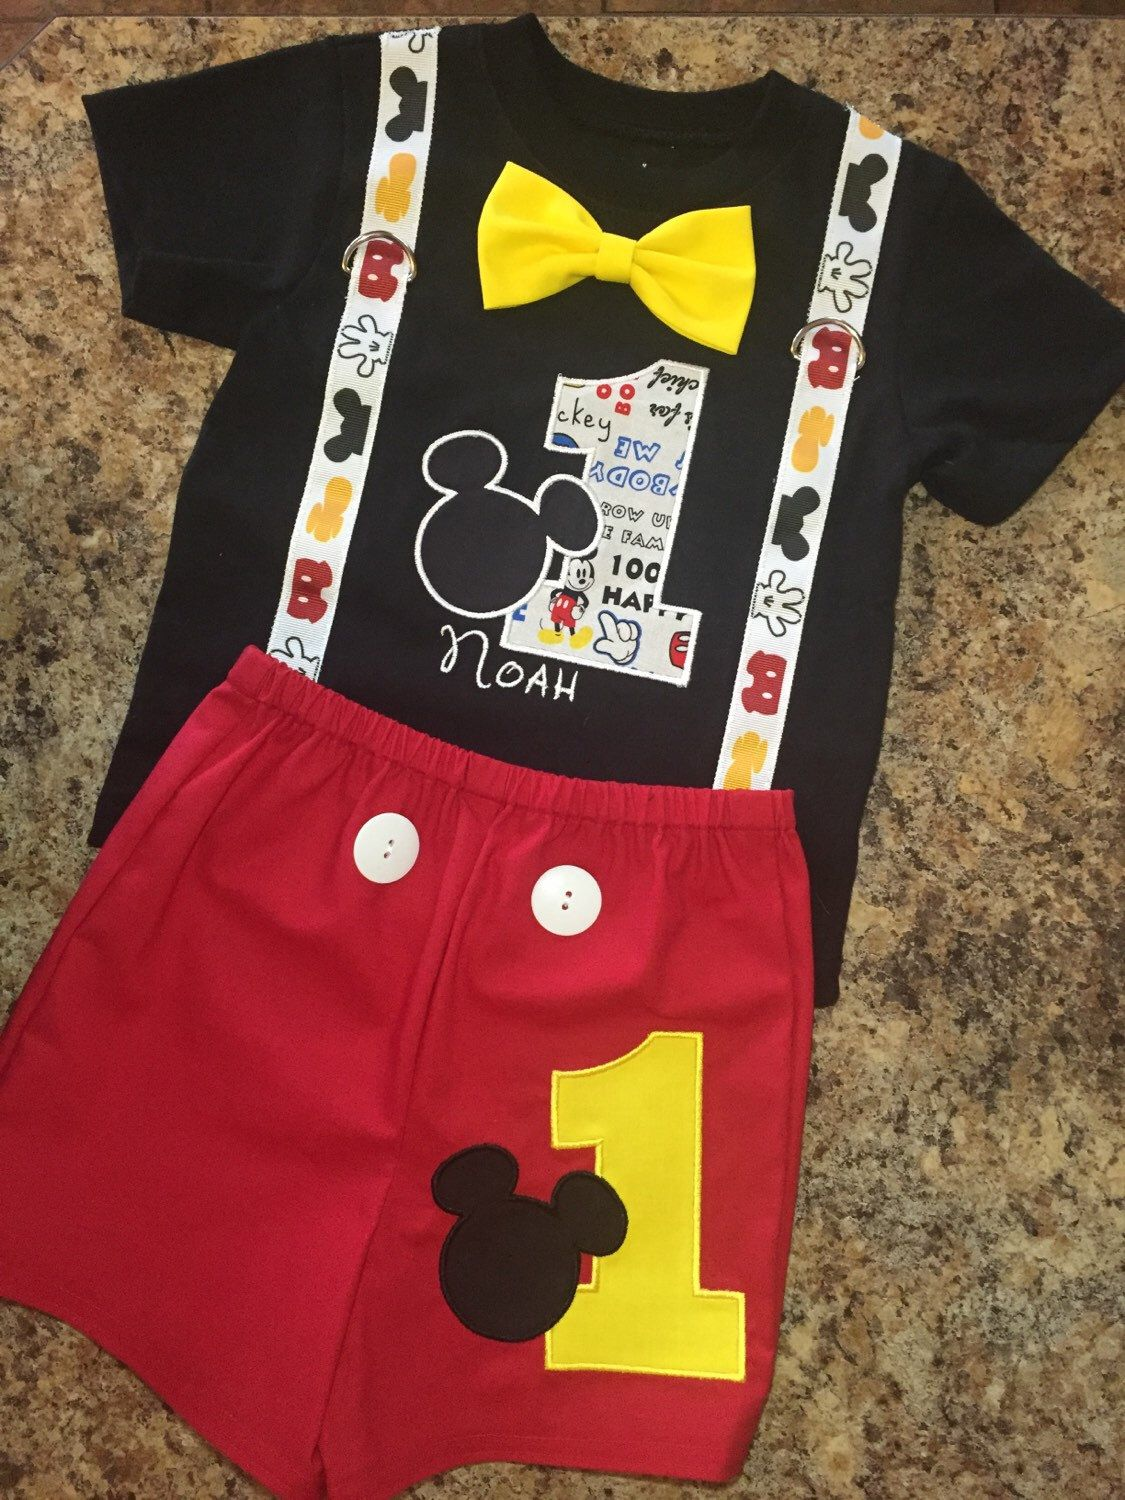 Birthday Mickey Mouse Shirt (black) and Shorts outfit with suspenders, yellow bow tie, name, and number on shirt - Mickey/number on shorts